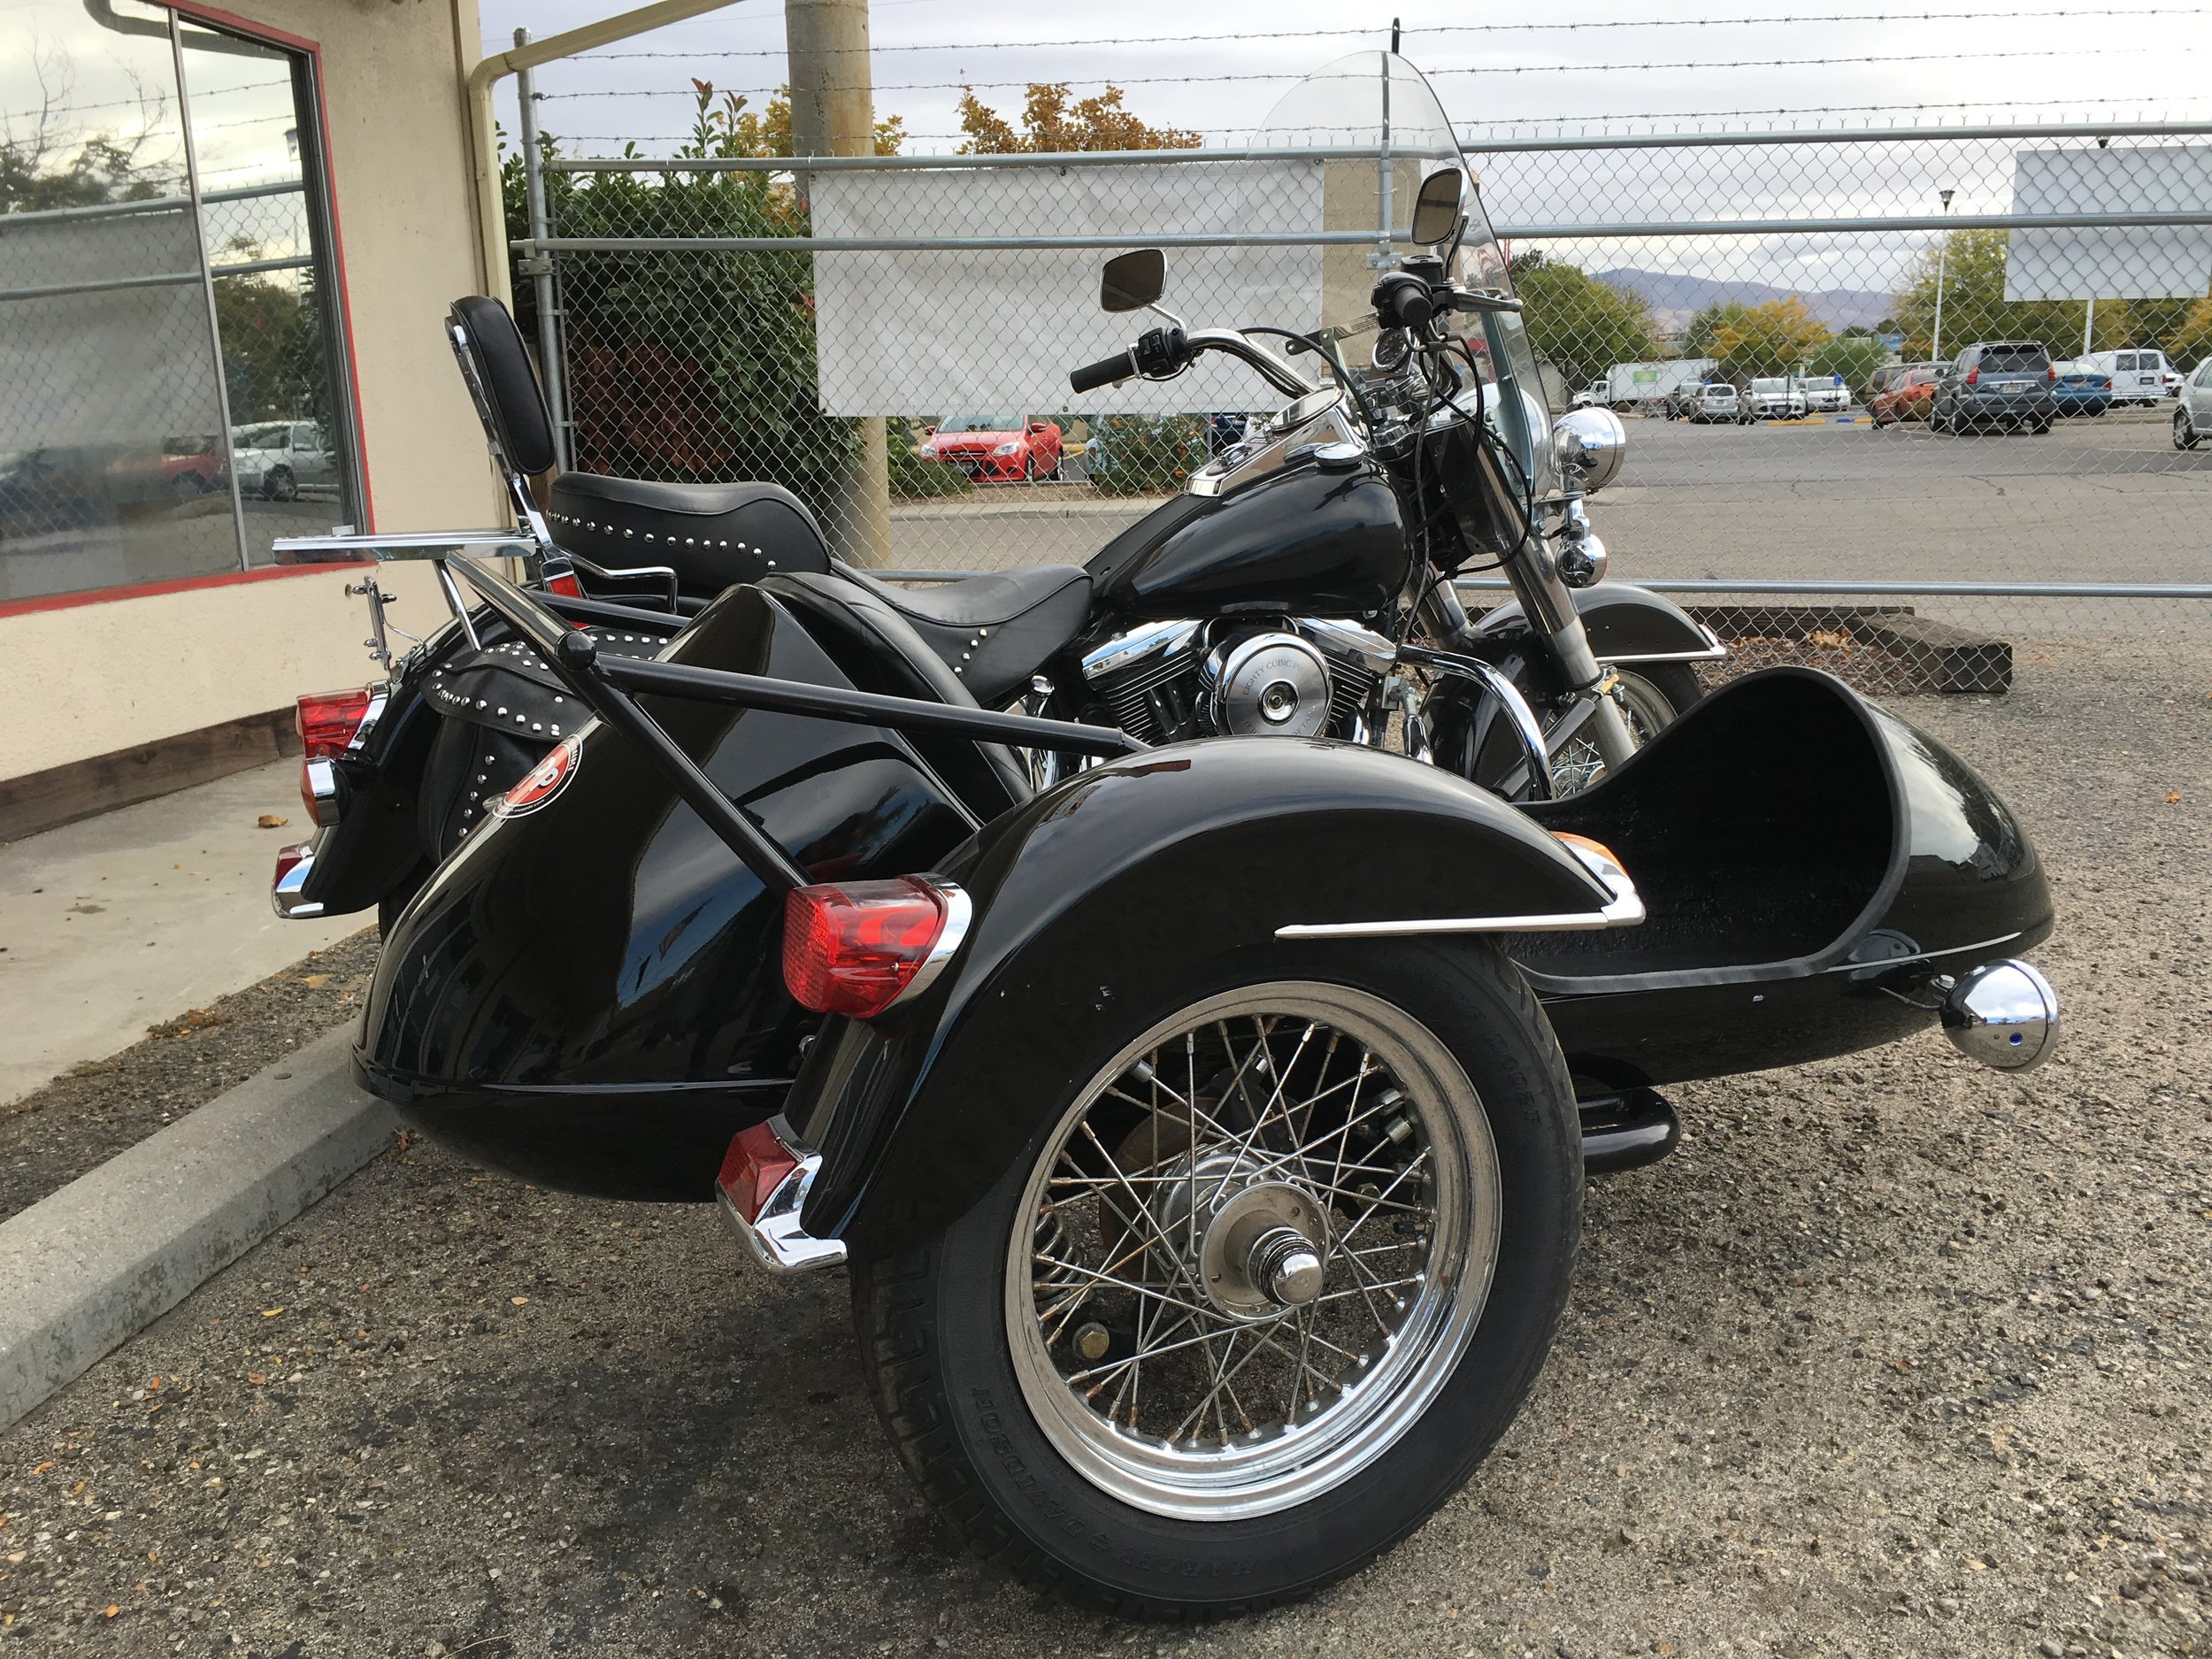 1996 HARLEY HERITAGE SOFTAIL WITH SIDECAR FOR SALE